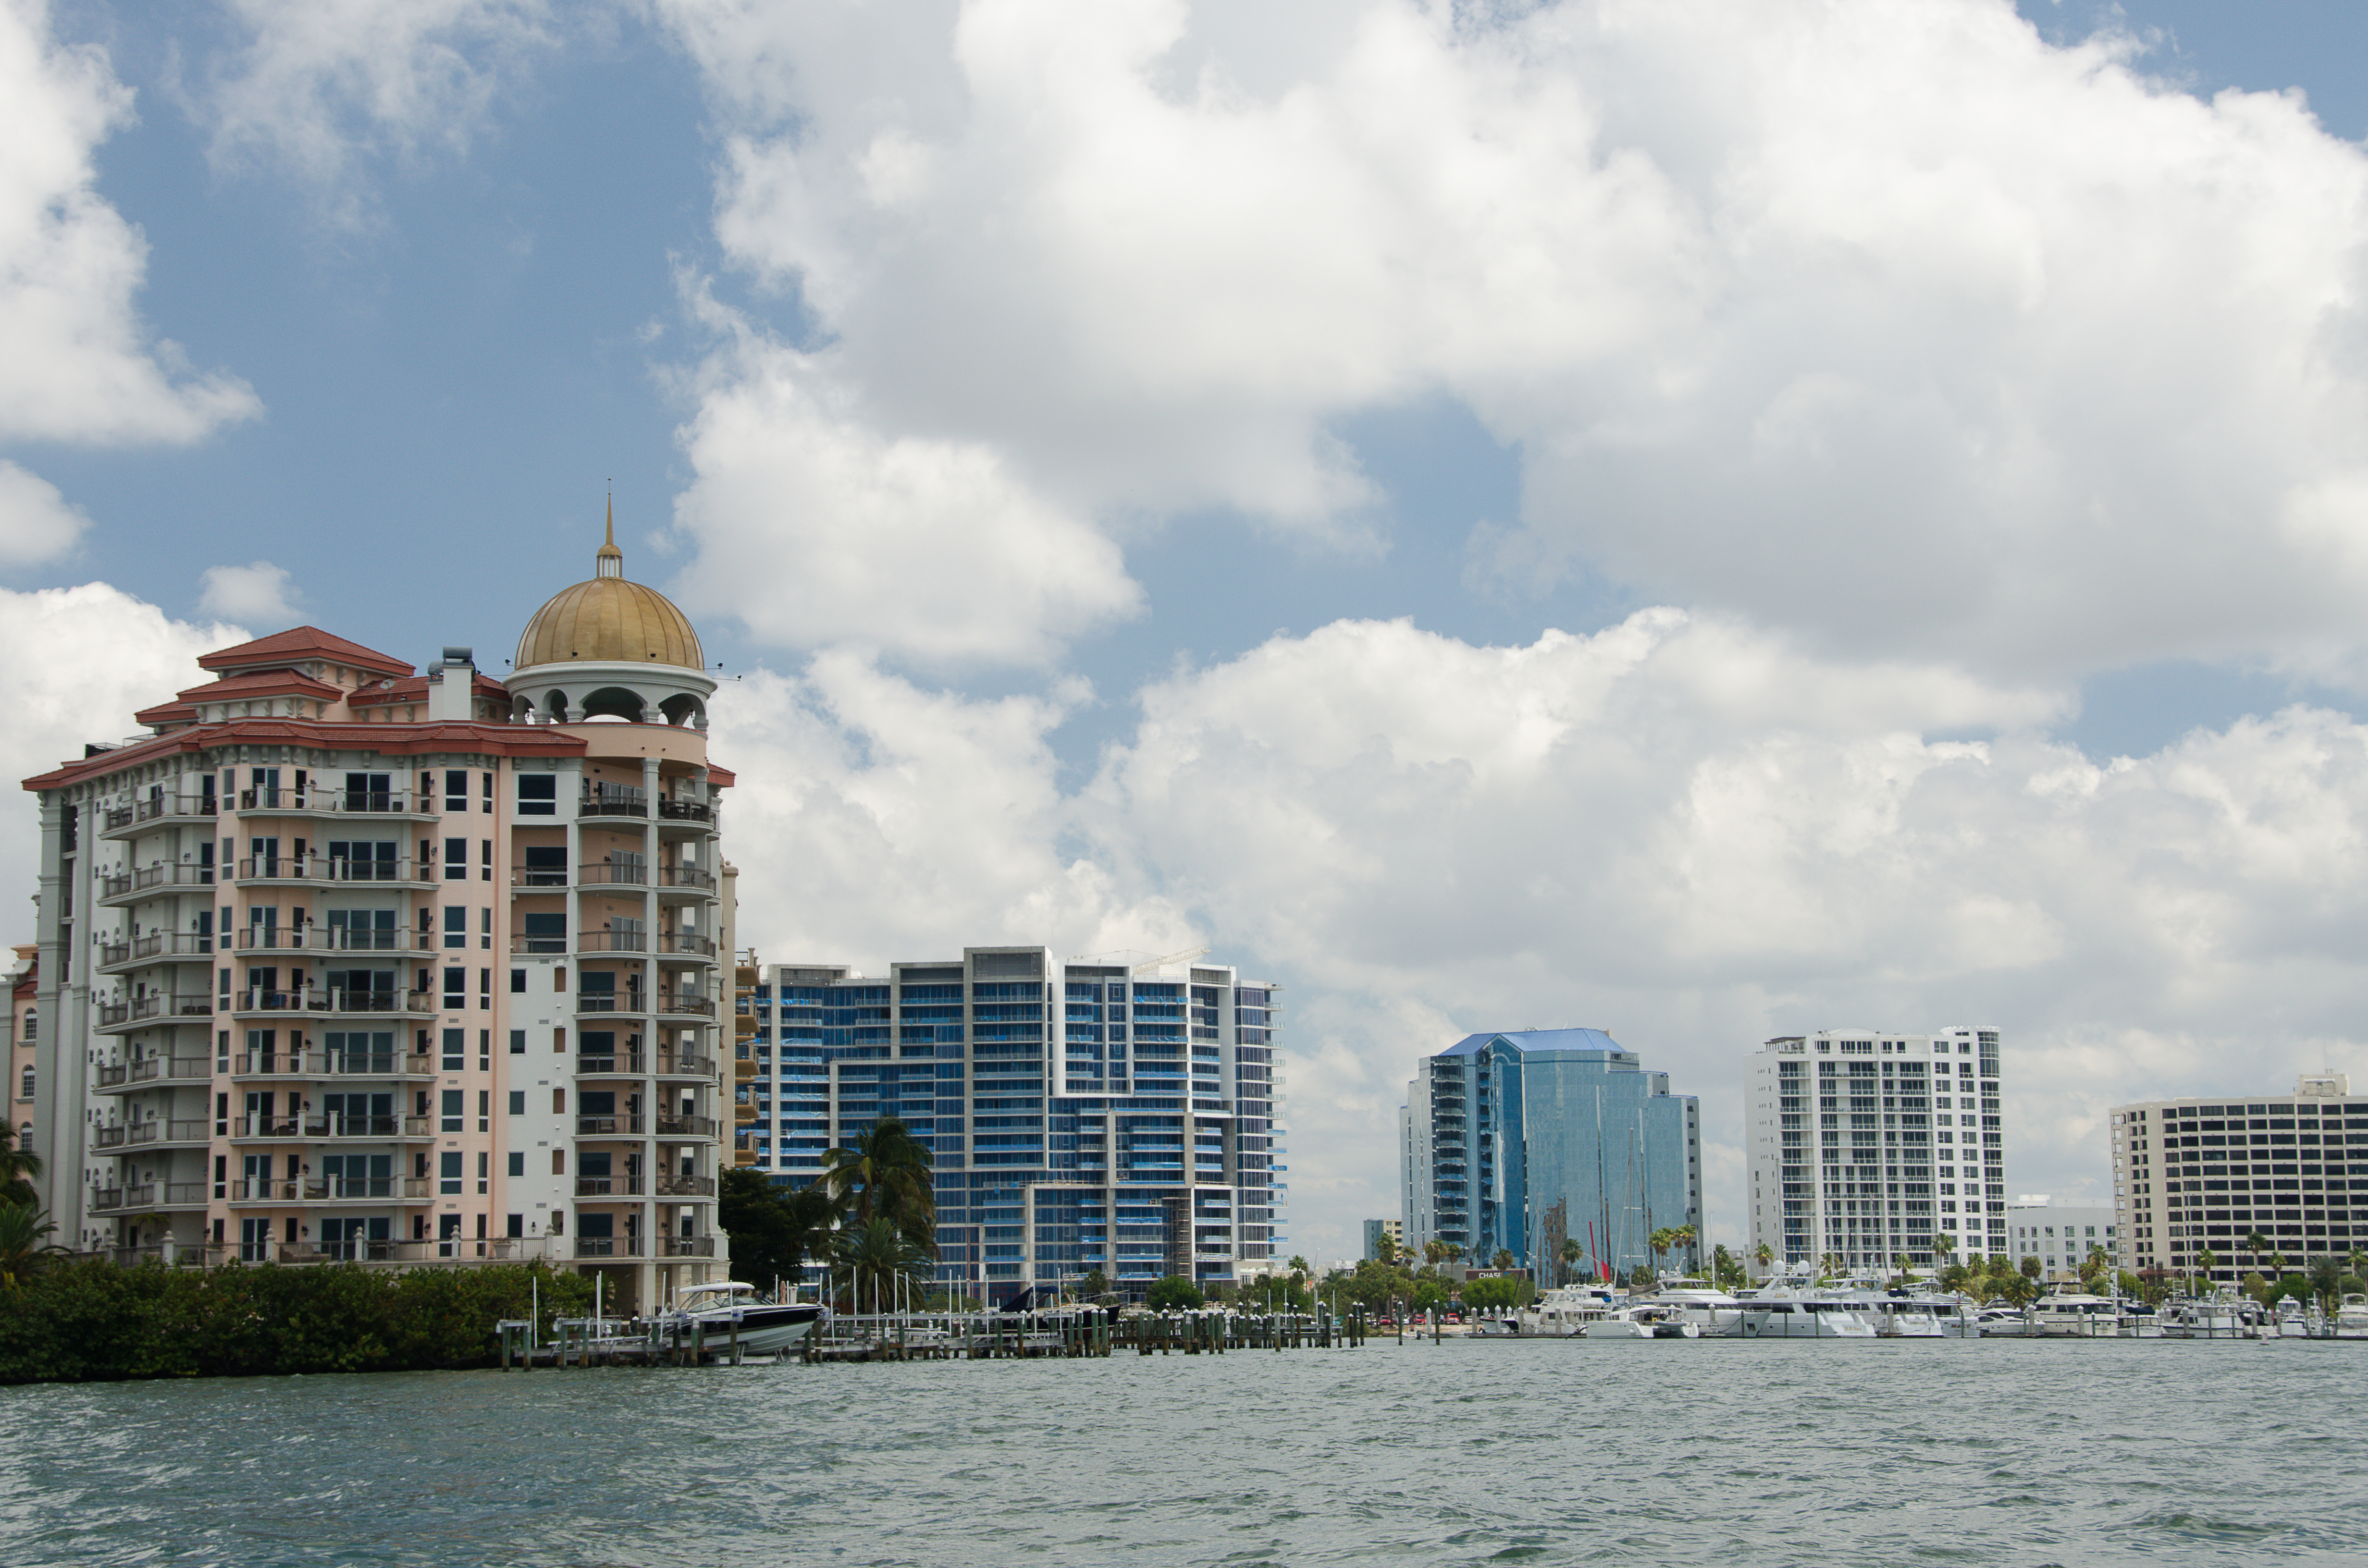 8 reasons why you should move to Sarasota, Florida, USA